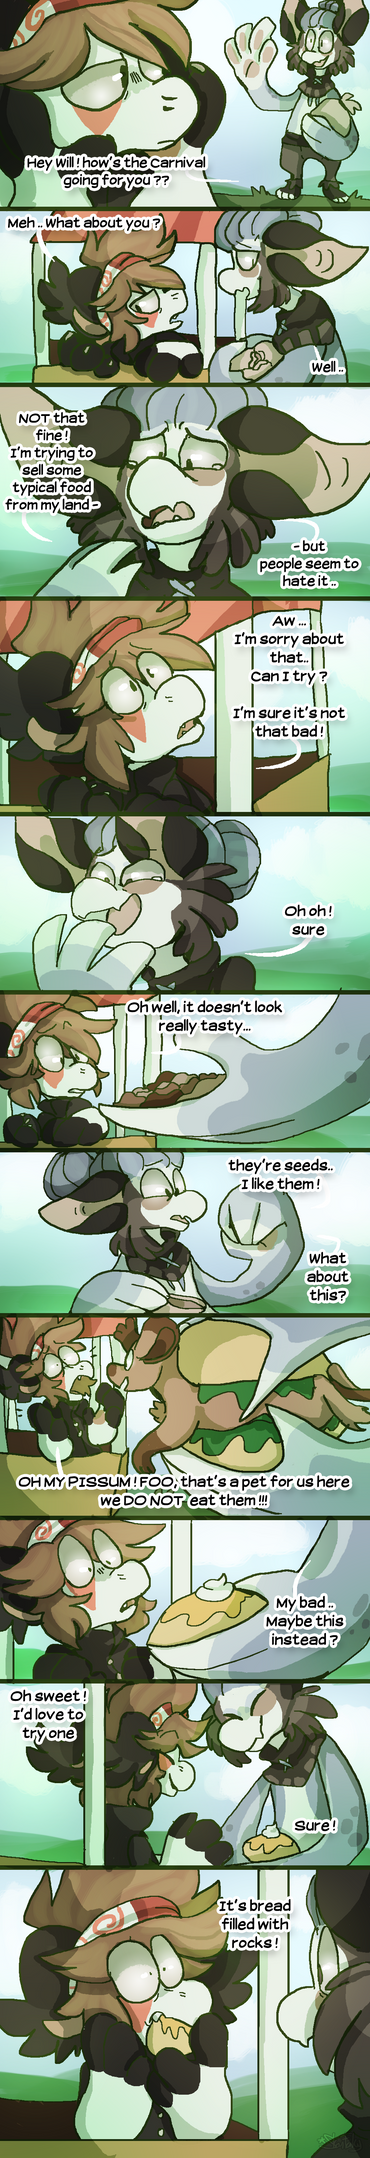 Mod Mess With Foo by Faky-bean